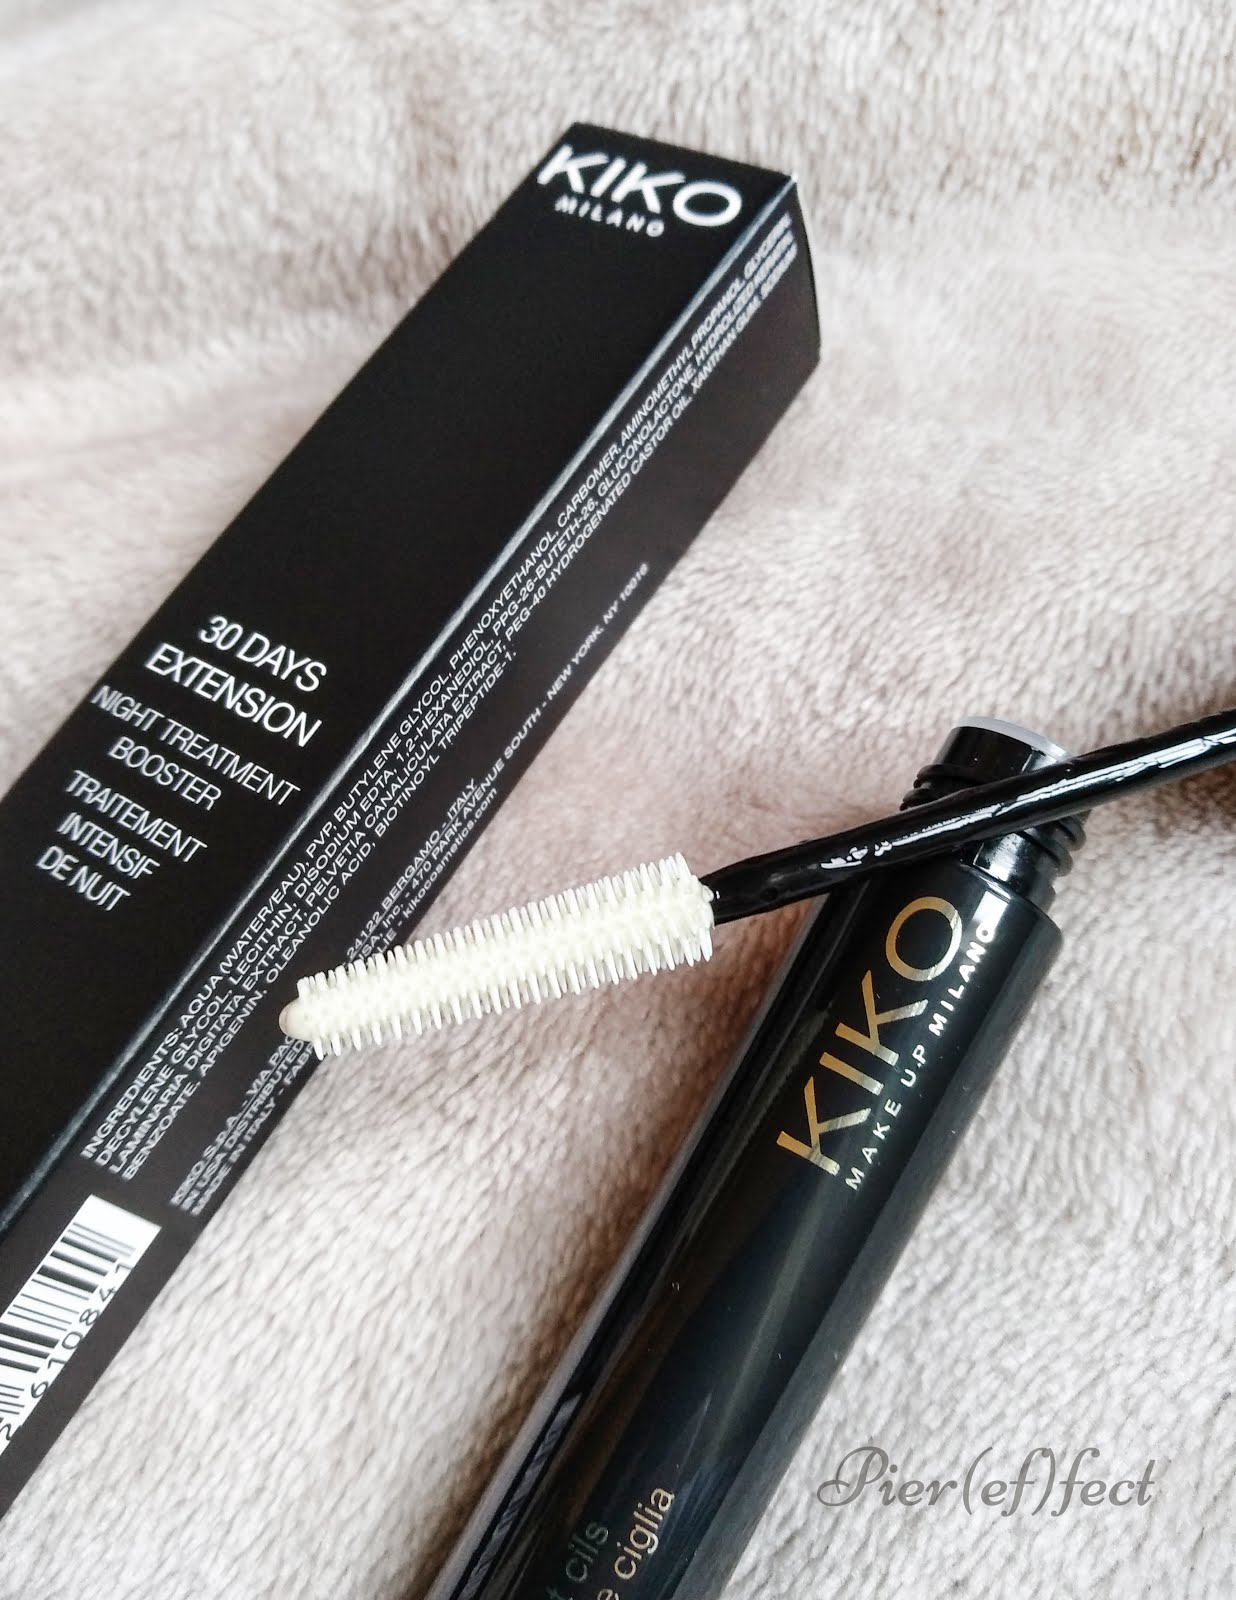 Recensione 30 Days Extension Night Treatment Booster Kiko